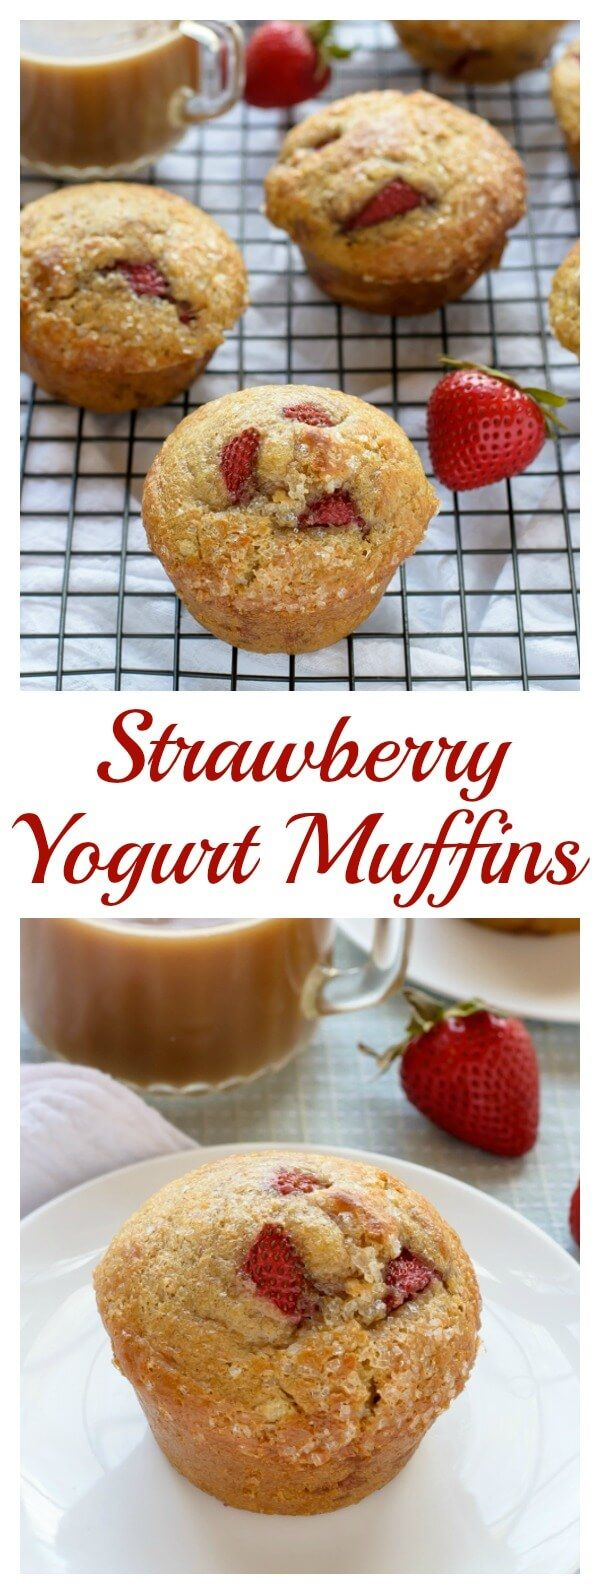 made these Strawberry Yogurt Muffins w my 4 yr old, so they were easy ...